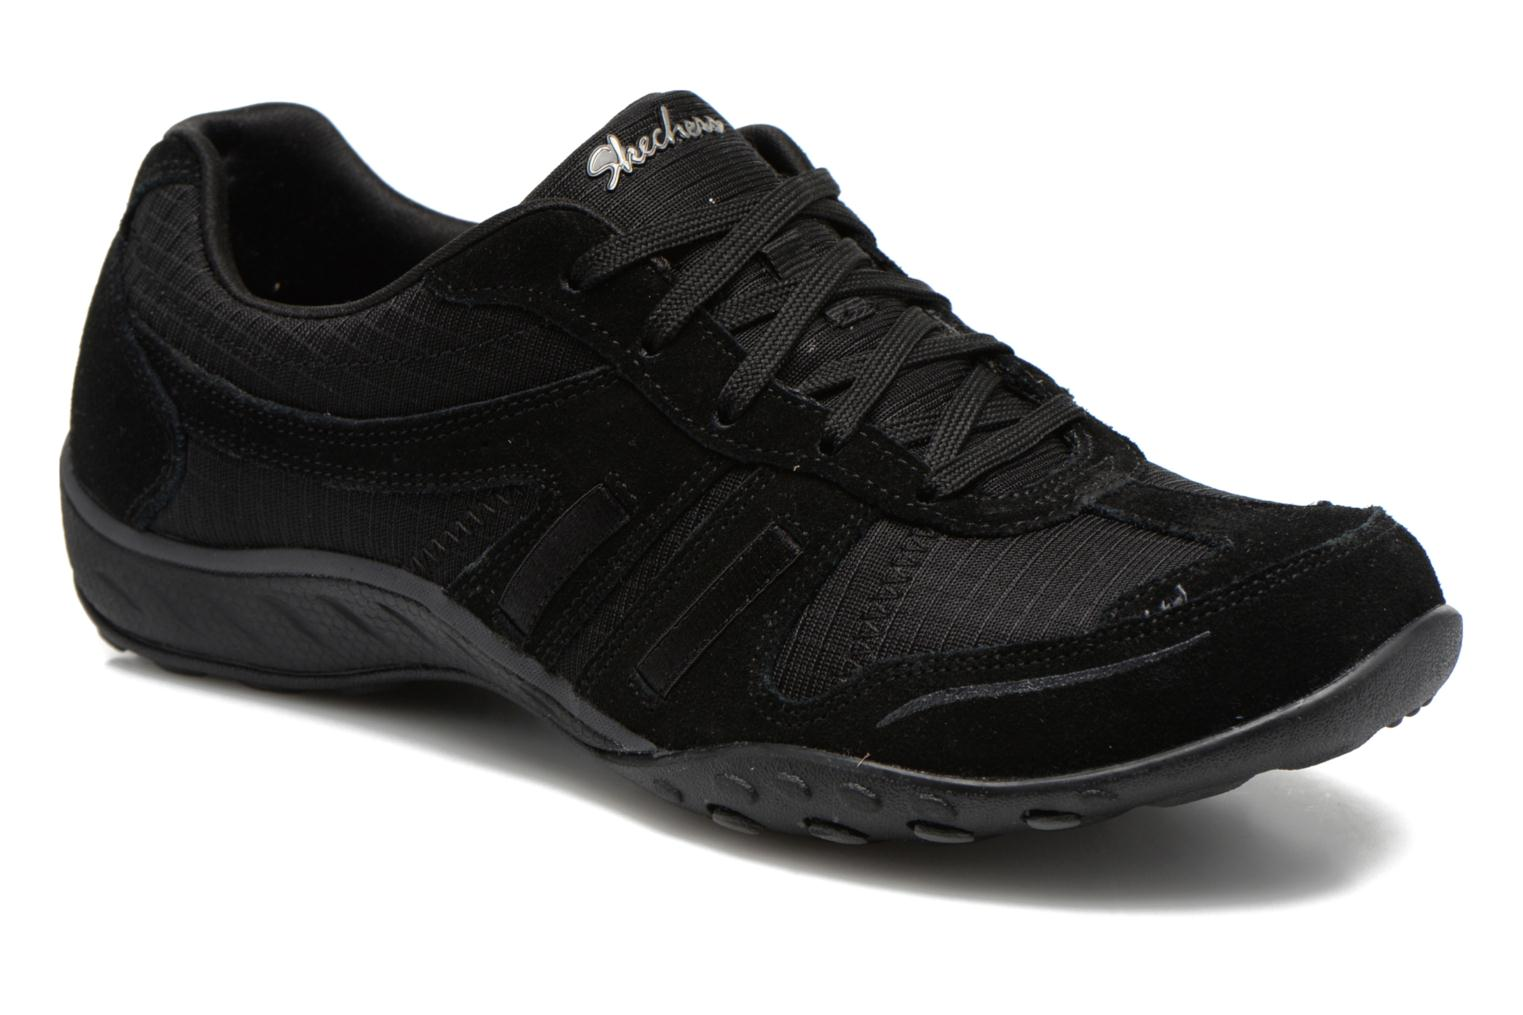 Baskets Skechers Breathe-Easy - Jackpot 22532 Noir vue détail/paire